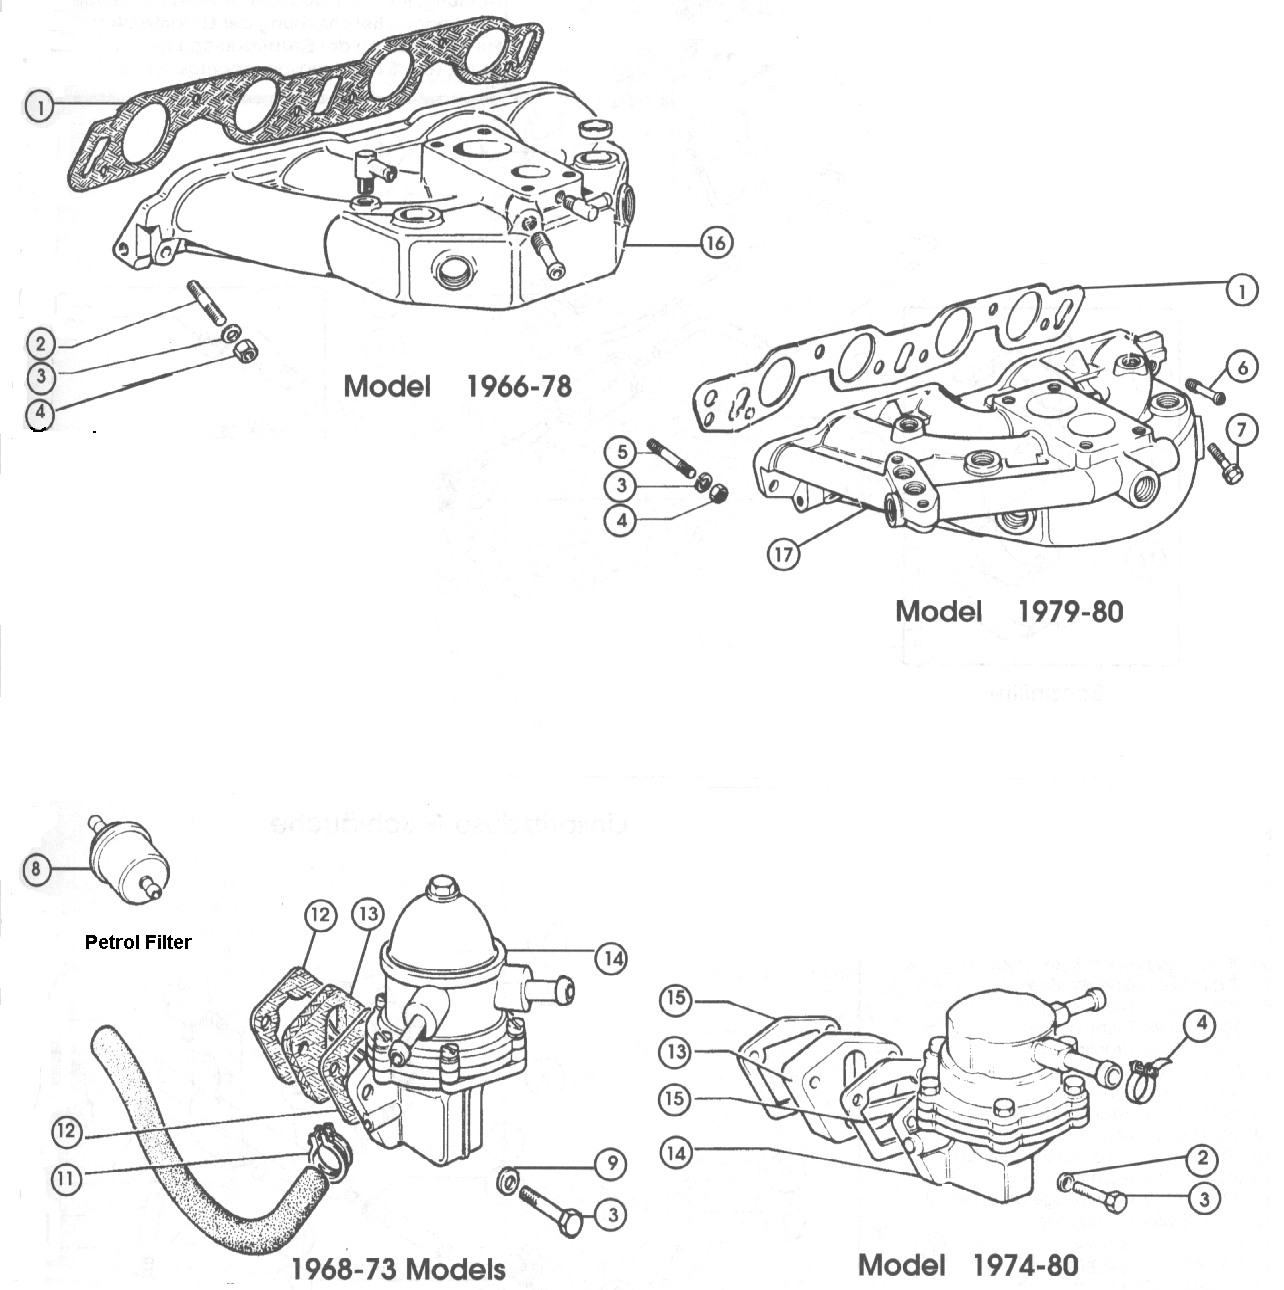 1981 Fiat Spider Fuel Pump Location The Car 79 124 Schematic 2000 Source Inlet Manifold 500 And Classic Abarth